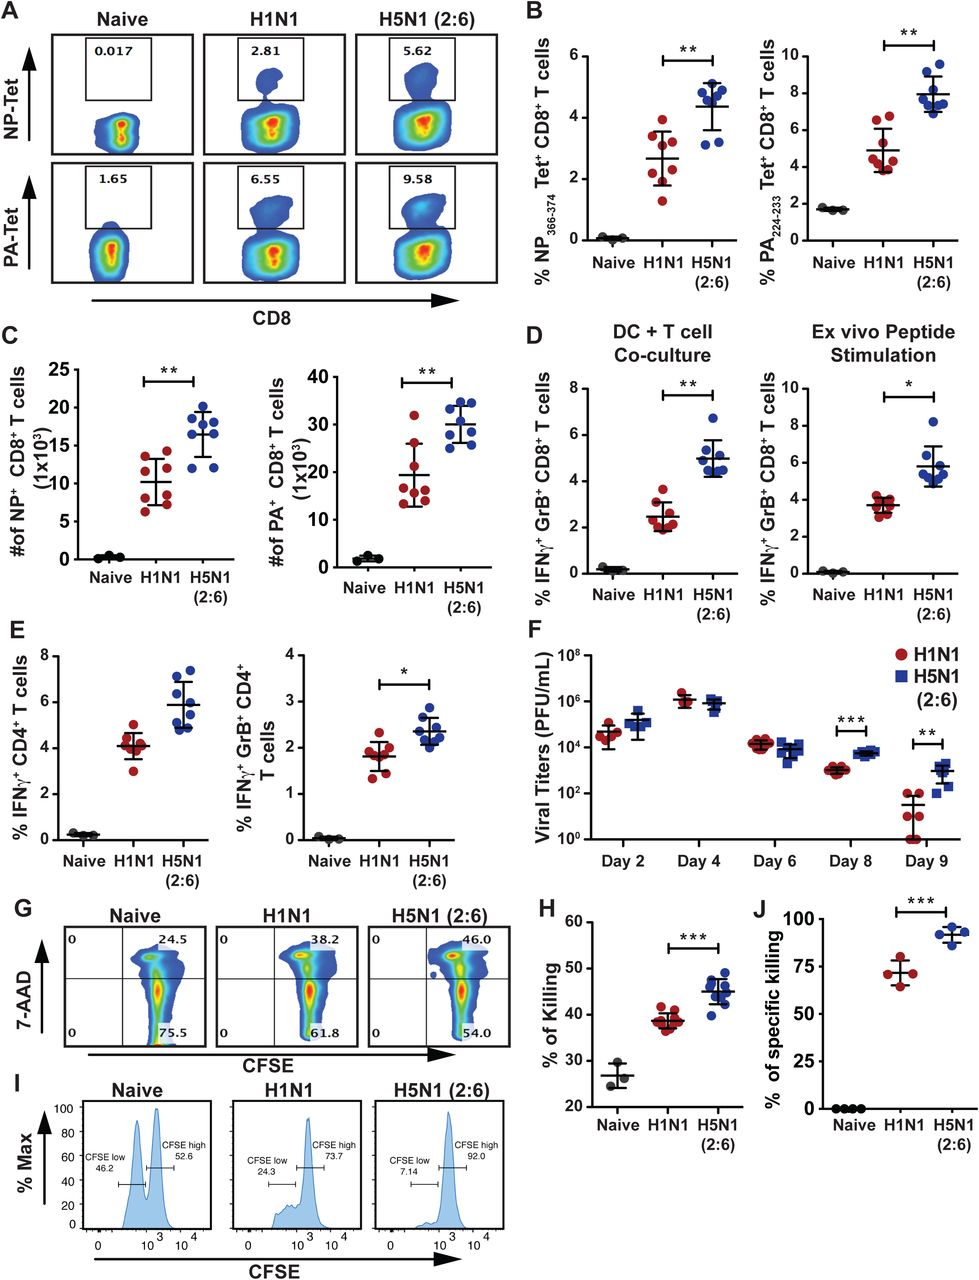 Mice infected with H5N1 (2:6) mount robust T cell responses but show delayed viral clearance. (A-E) C57BL/6 mice (n=3-4/group) were infected with 100 PFU of H1N1 or H5N1 (2:6) and on day 8 pi, T cells from the lungs were isolated and evaluated in various assays. (A-C) Comparative analysis of lung CD8+ T cells from H5N1 (2:6) or H1N1 infected mice by NP or PA tetramer staining. (A) Representative FACS plots for NP or PA tetramer staining. (B) Relative frequency of tetramer positive CD8+ T cells. (C) Absolute numbers of virus specific CD8+ T cells. (D-E) Comparative analysis of cytokine production in T cells isolated from the lungs of H5N1 (2:6) or H1N1 infected mice. T cells were co-cultured with BMDC either infected with X31 (H3N2) or pulsed with NP peptide, and the frequencies of IFNγ and GrB producing T cells were analyzed by flow cytometry. (D) Relative frequency of cytokine producing CD8+ T cells. (E) Relative frequency of cytokine producing CD4+ T cells stimulated with NP peptide. (F) Evaluation of viral loads in the lungs of infected mice. C57BL/6 mice were infected with 100 PFU of H1N1 or H5N1 (2:6) and at various times pi, viral loads in the lungs were measured by standard plaque assay. (G-H) Ex vivo analysis of cytotoxic T cell functions. CFSE labeled splenocytes pulsed with NP peptide were co-cultured with lung CD8+ T cells for 8hrs, followed by staining with 7-AAD. Ex vivo cytotoxic effects of CD8+ T cells were evaluated by analyzing 7-AAD positive splenocytes. (G) Representative FACS plots for 7-AAD positive cells and (H) relative level of killing by T cells shown as percentage of 7-AAD positive cells. (I-J) In vivo analysis of cytotoxic T cell functions. (I) Representative FACS plots for in vivo killing of adoptively transferred NP pulsed splenocytes in H1N1 or H5N1 (2:6) virus infected mice and (J) relative level of kiiling by T cells. The values are expressed as mean ± SD. *, **, *** denotes significance of